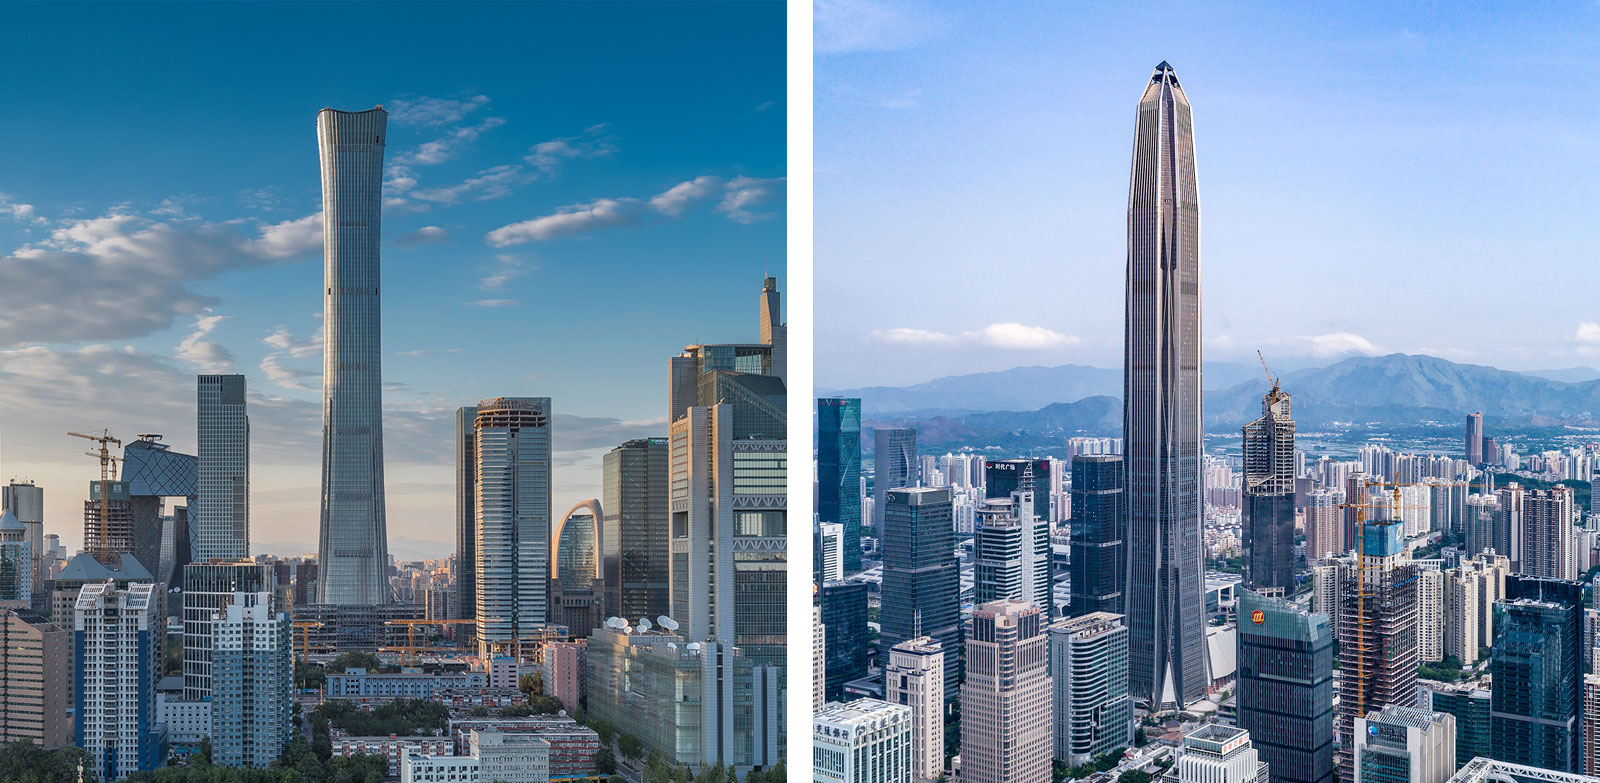 CITIC Tower - Beijing (left), Ping An Finance Center - Shenzhen (right).